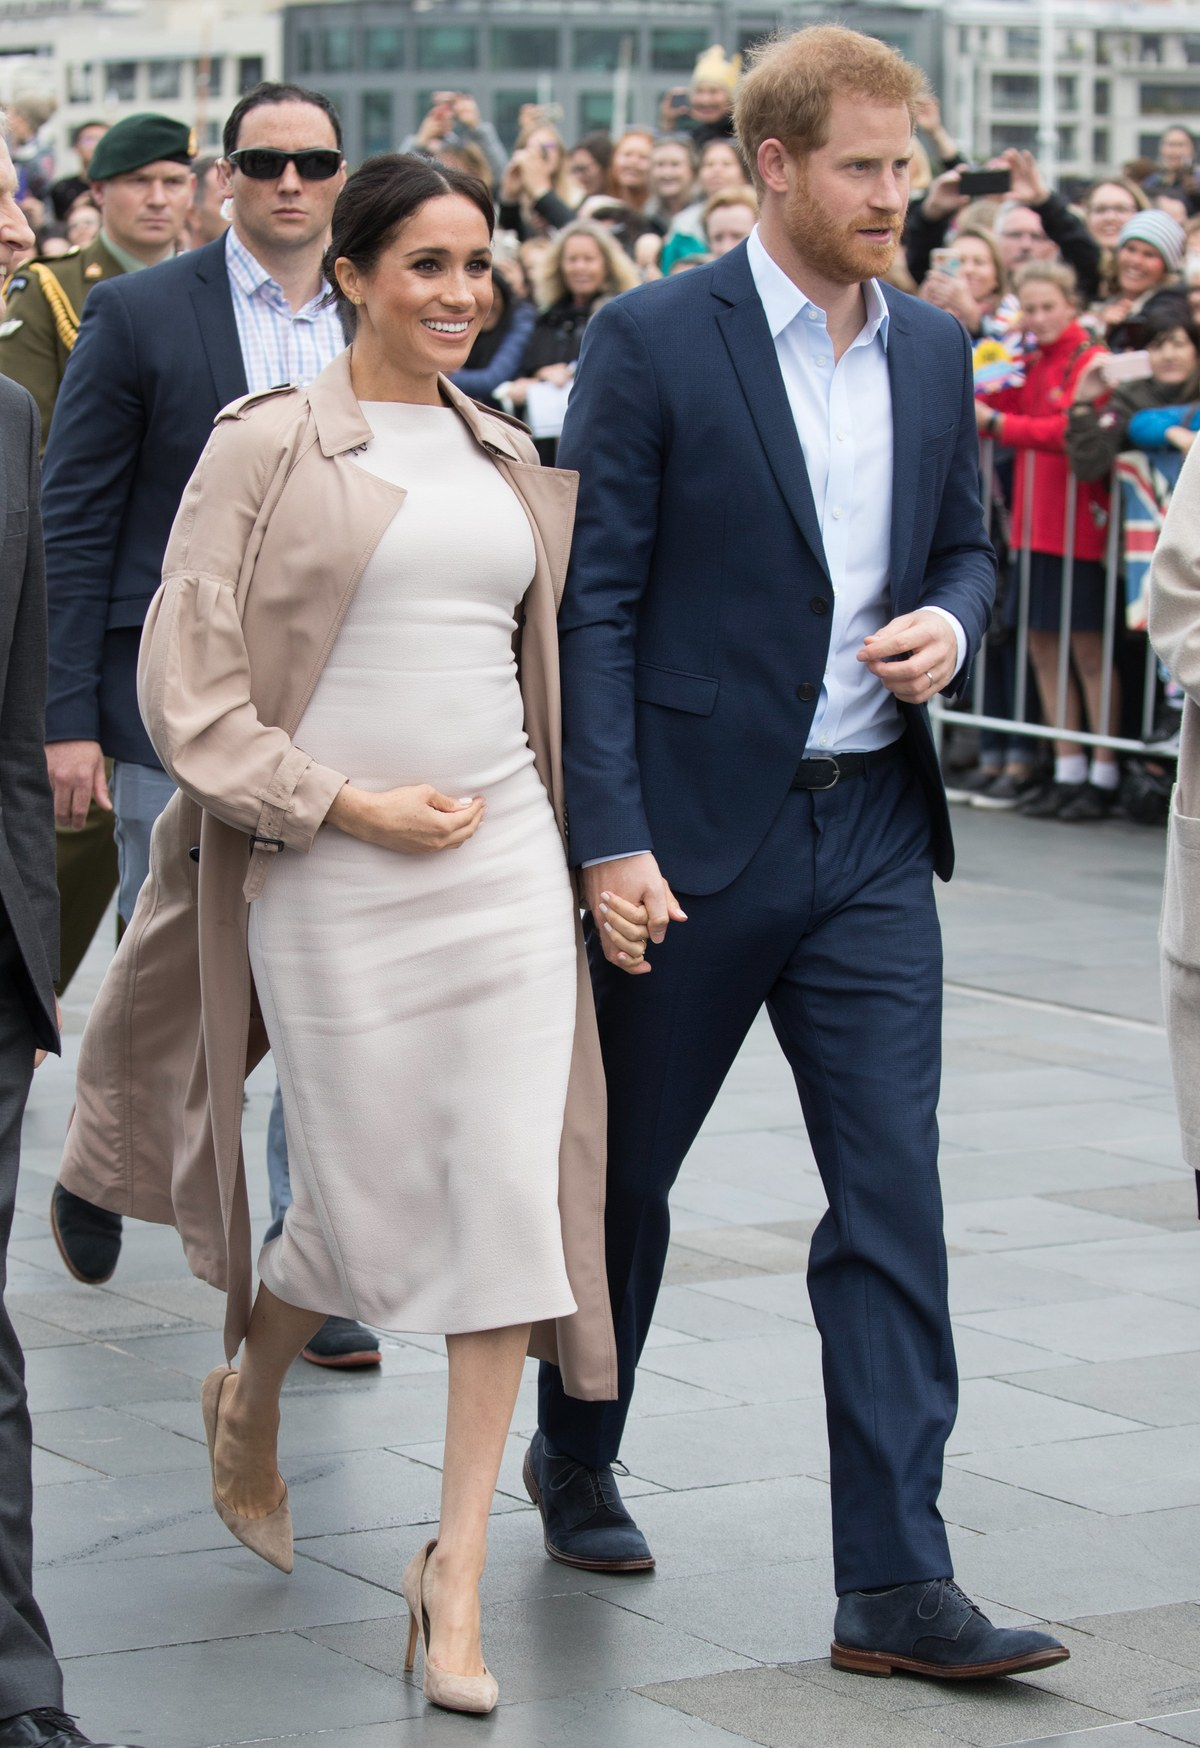 Combining two of Meghan's favored looks, this tone-on-tone ivory Brandon Maxwell dress under a Burberry trench, with the perfect nude suede pump…perfection!